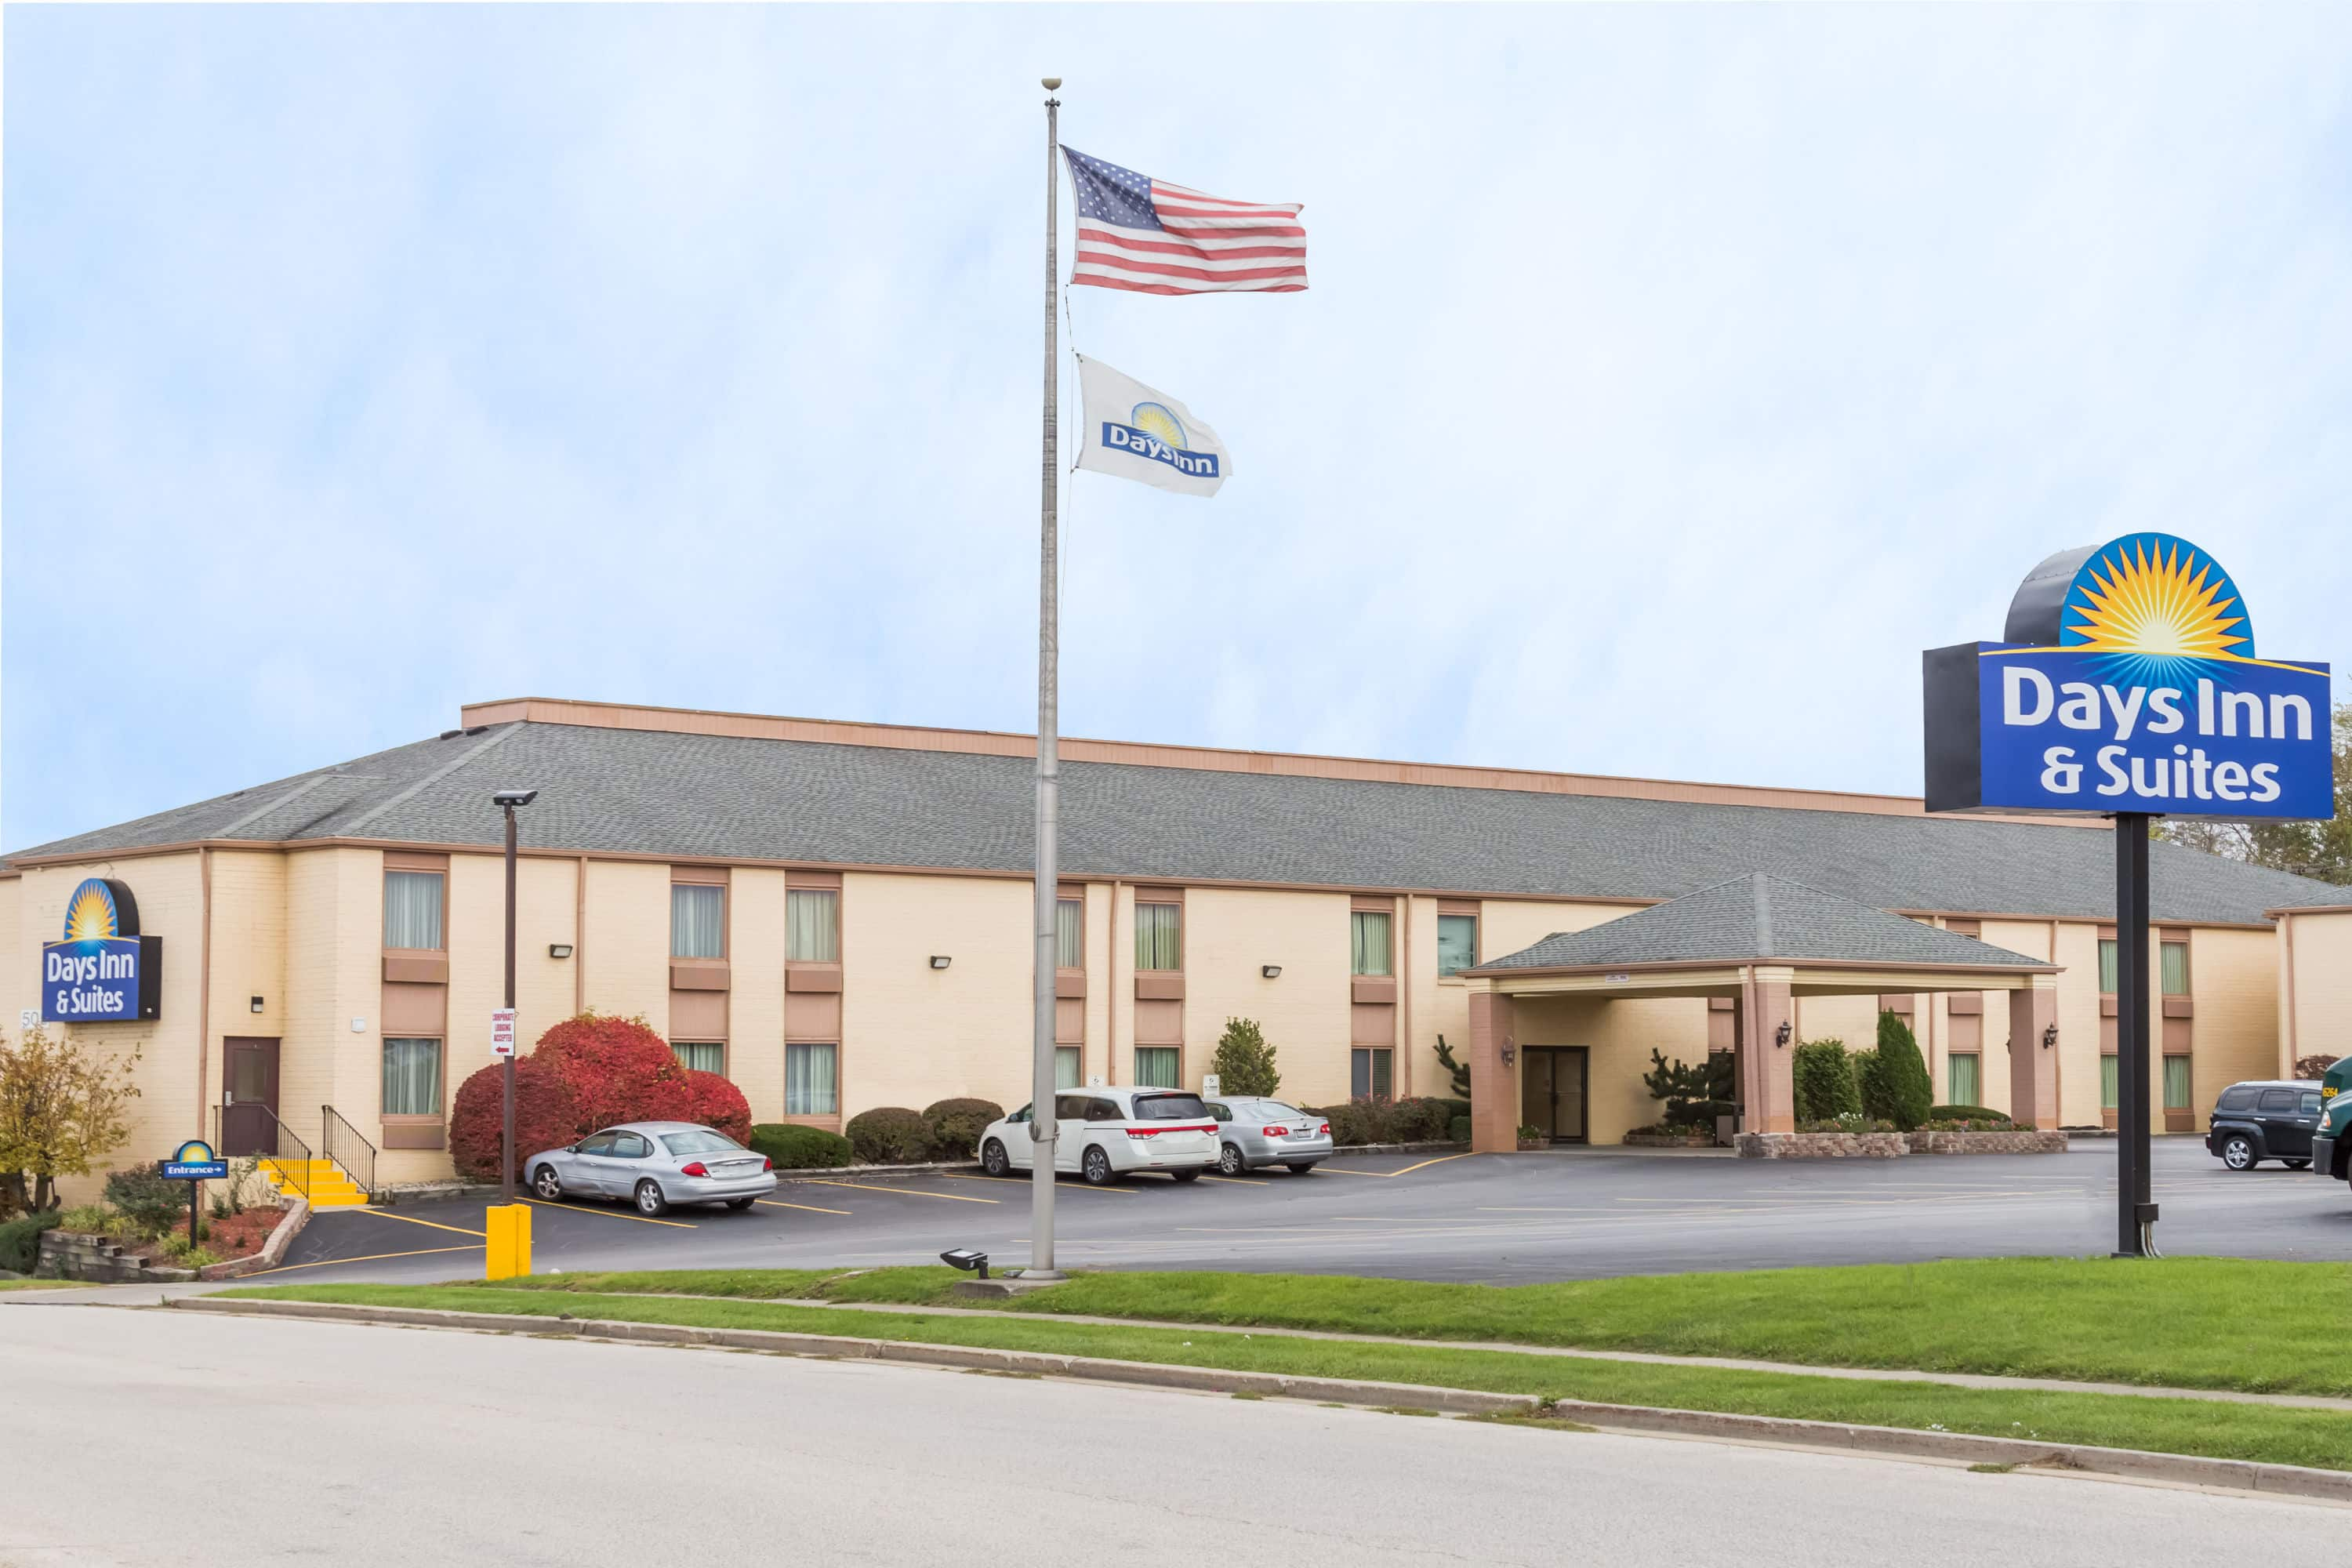 Days Inn & Suites by Wyndham Bloomington/Normal IL | Bloomington, IL